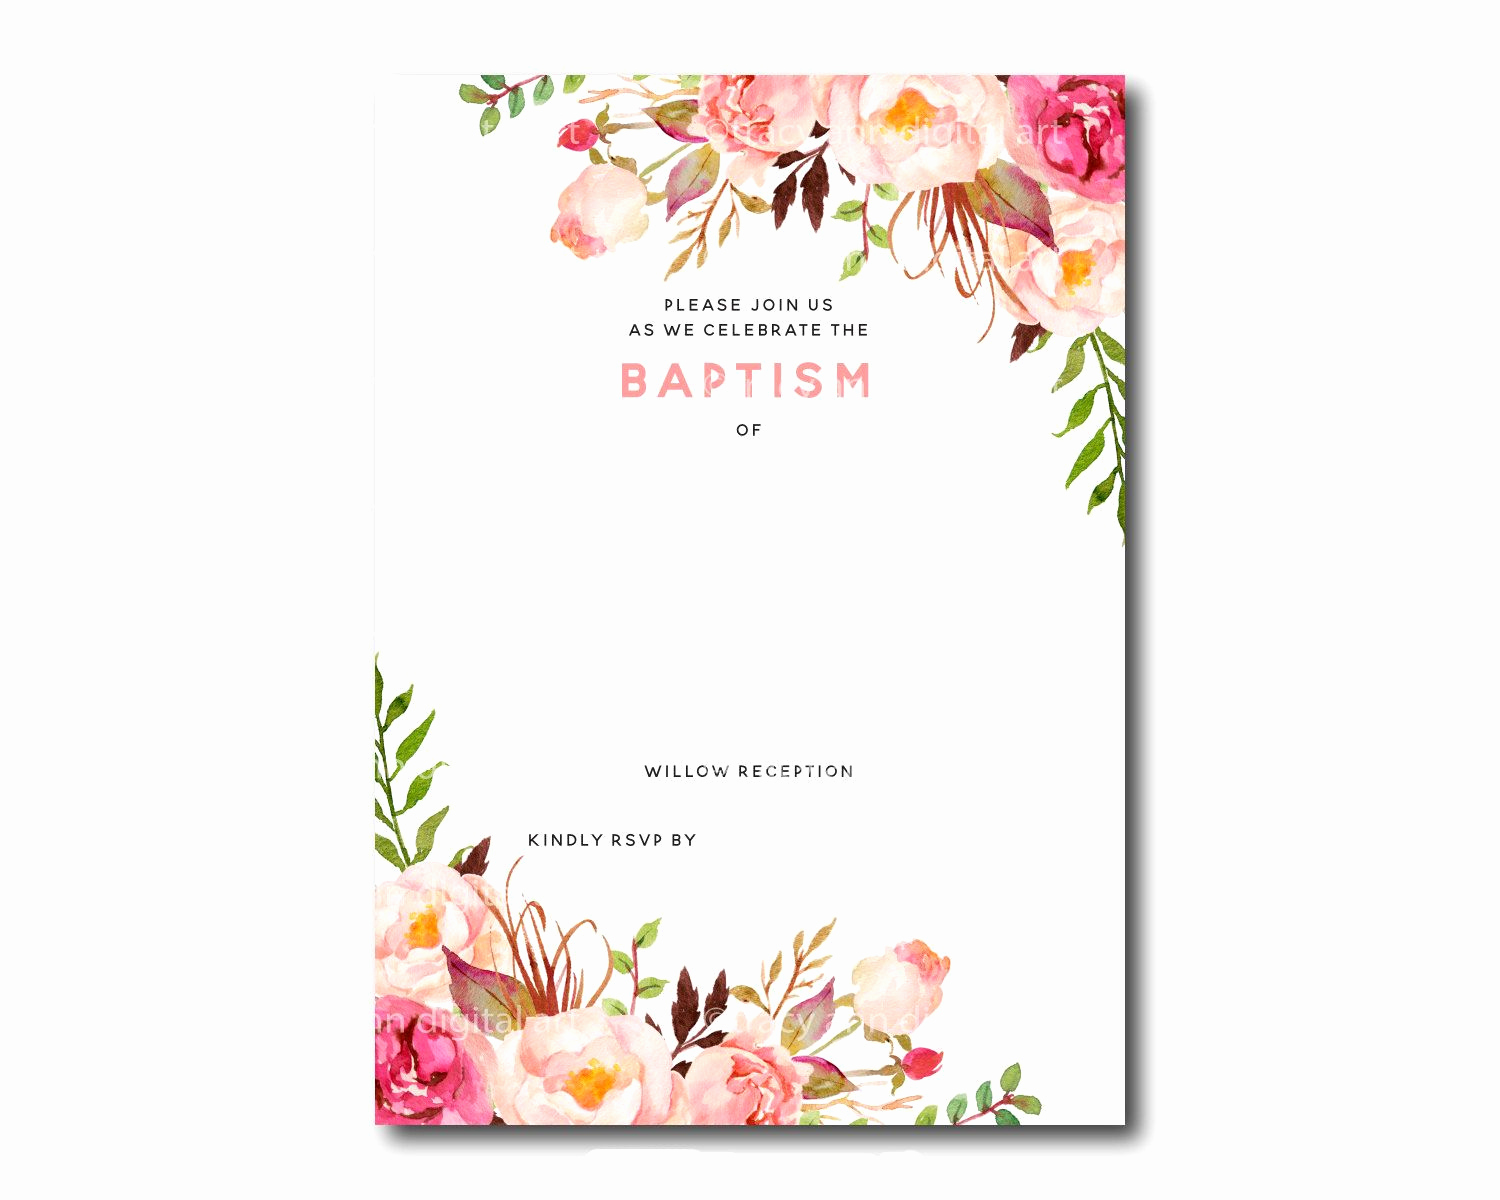 Free Printable Invitation Templates Lovely Awesome Free Template Free Printable Baptism Floral